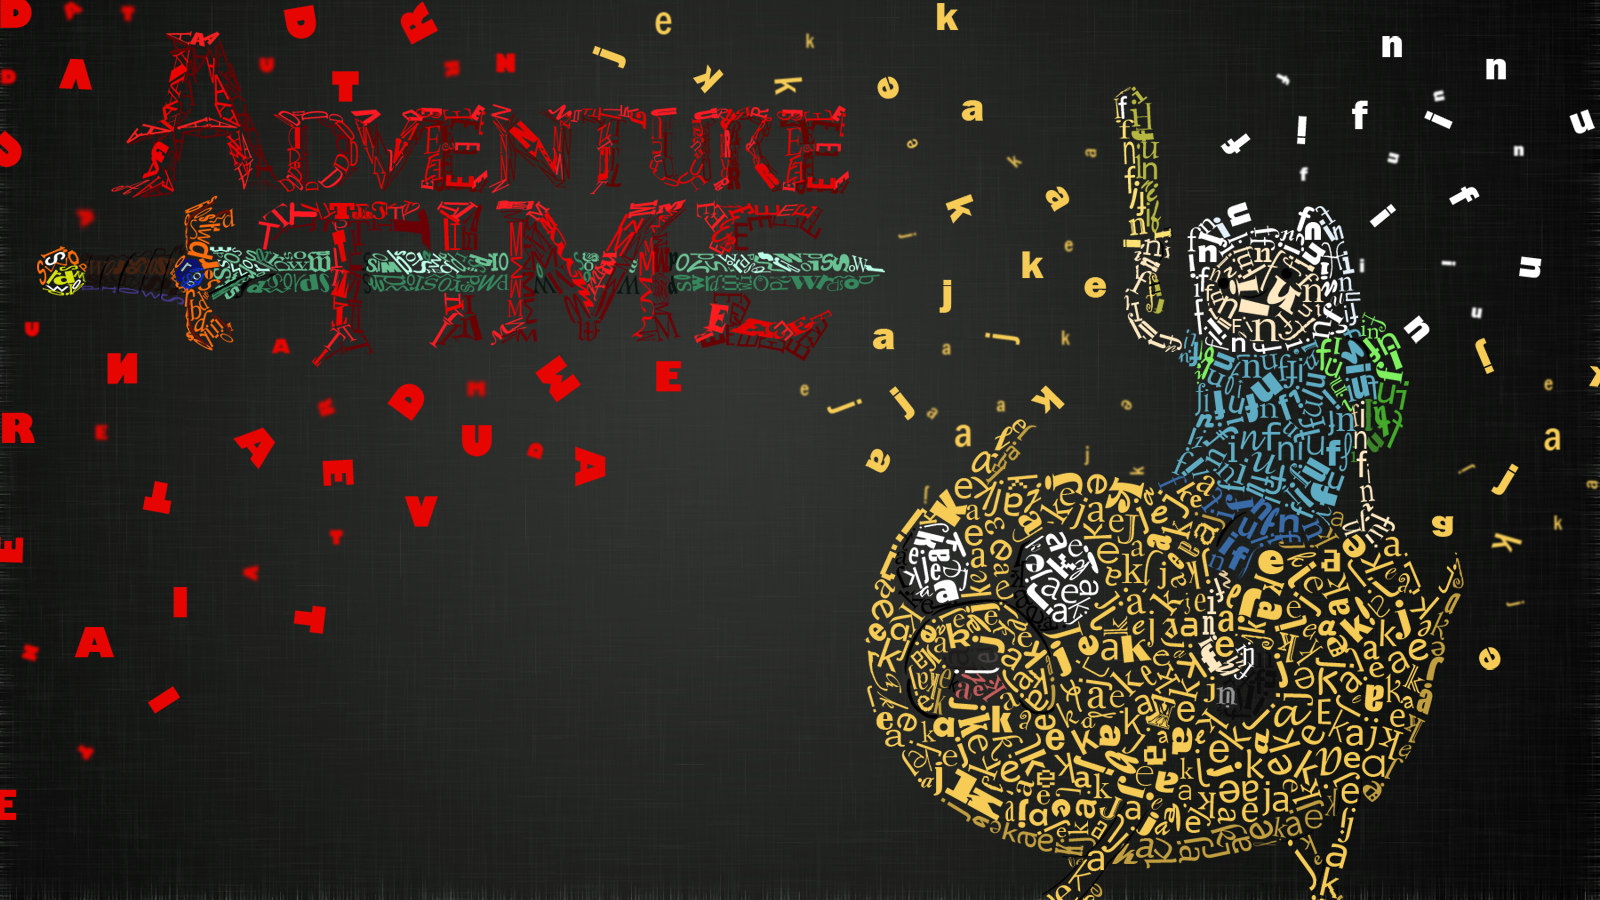 Adventure time typographic portrait HD Wallpaper